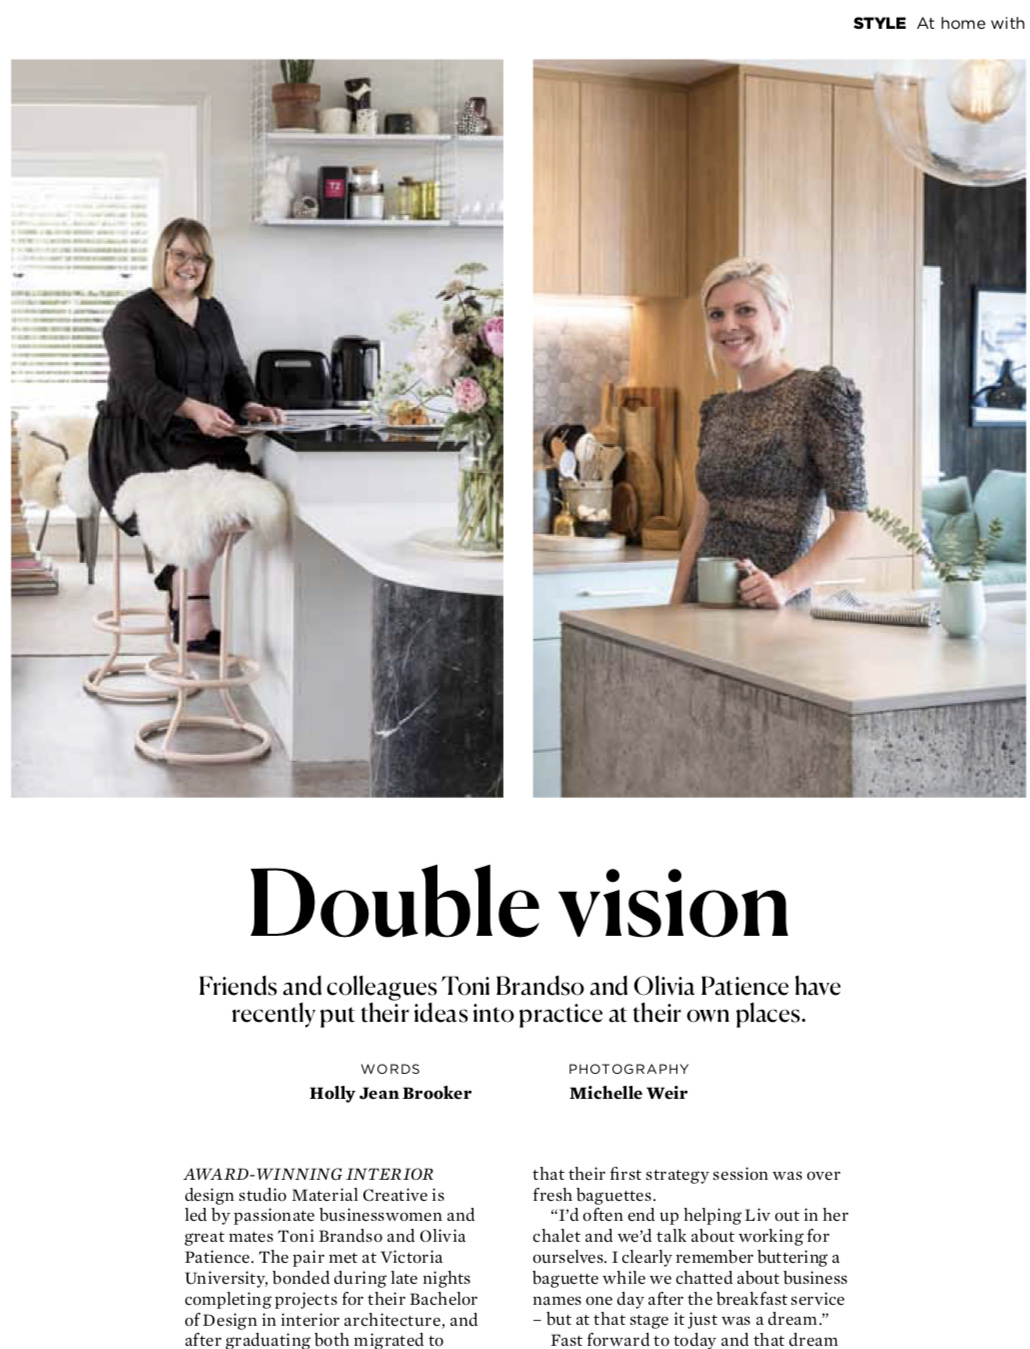 Homestyle Magazine 2018 - Friends and colleagues Toni Brandso and Olivia Patience have recently put their ideas into practice at their own places. Words by Holly Jean BrookerPhotography by Michelle Weir